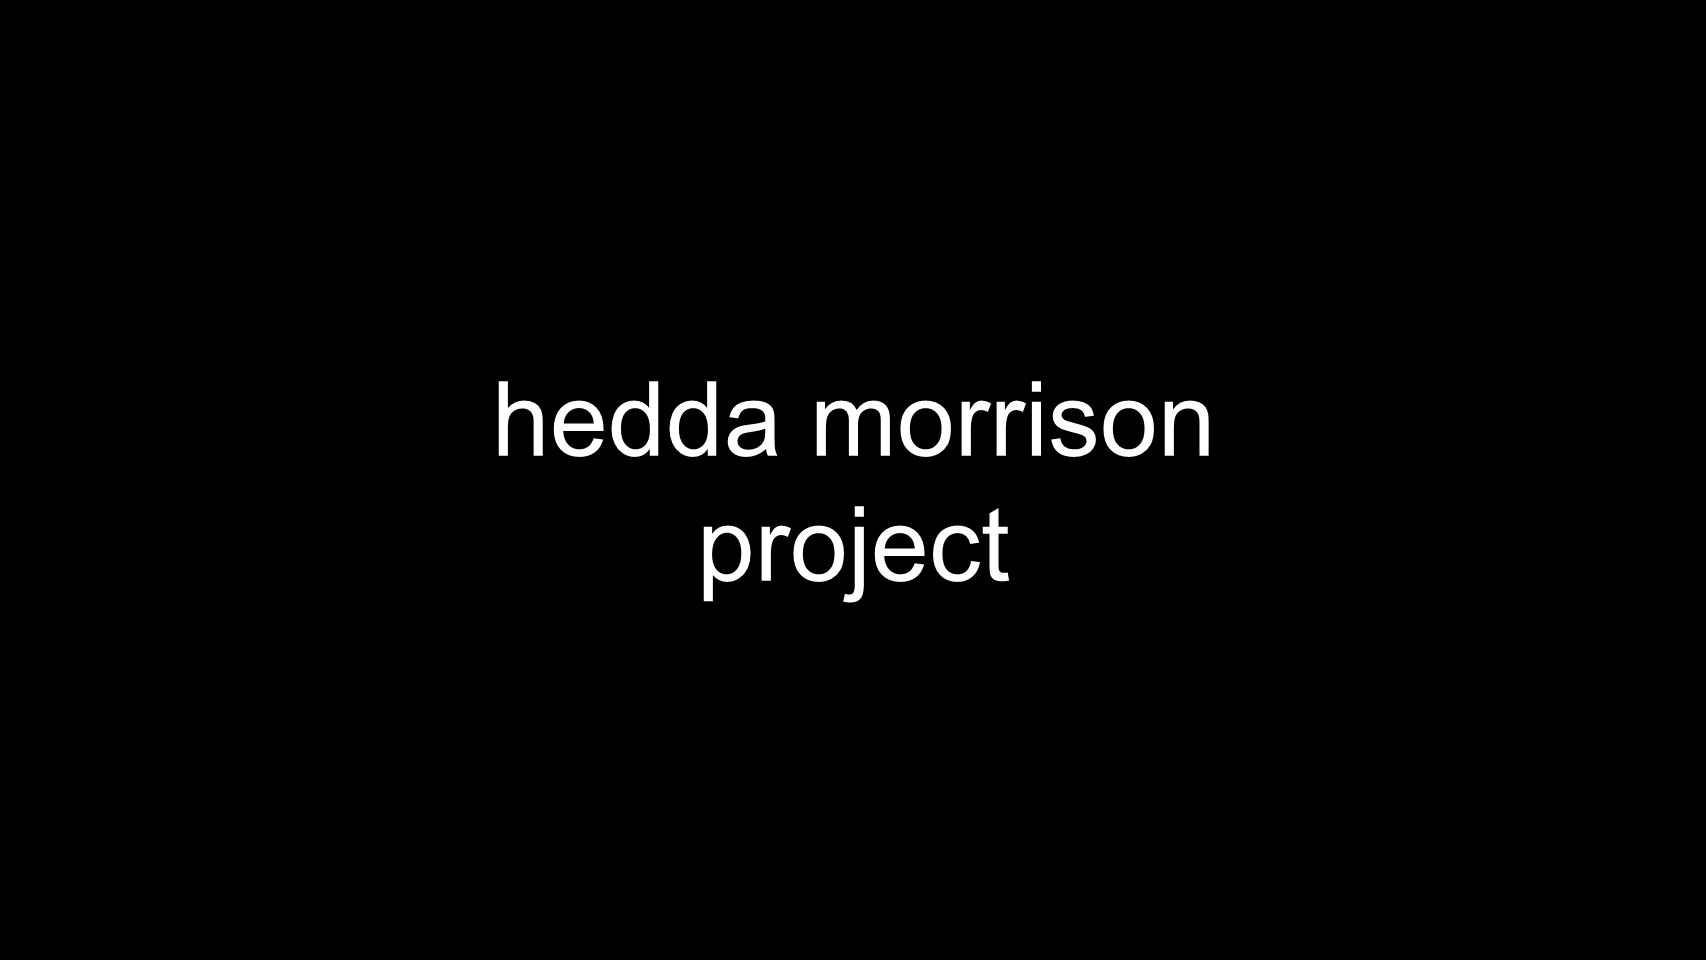 hedda morrison project